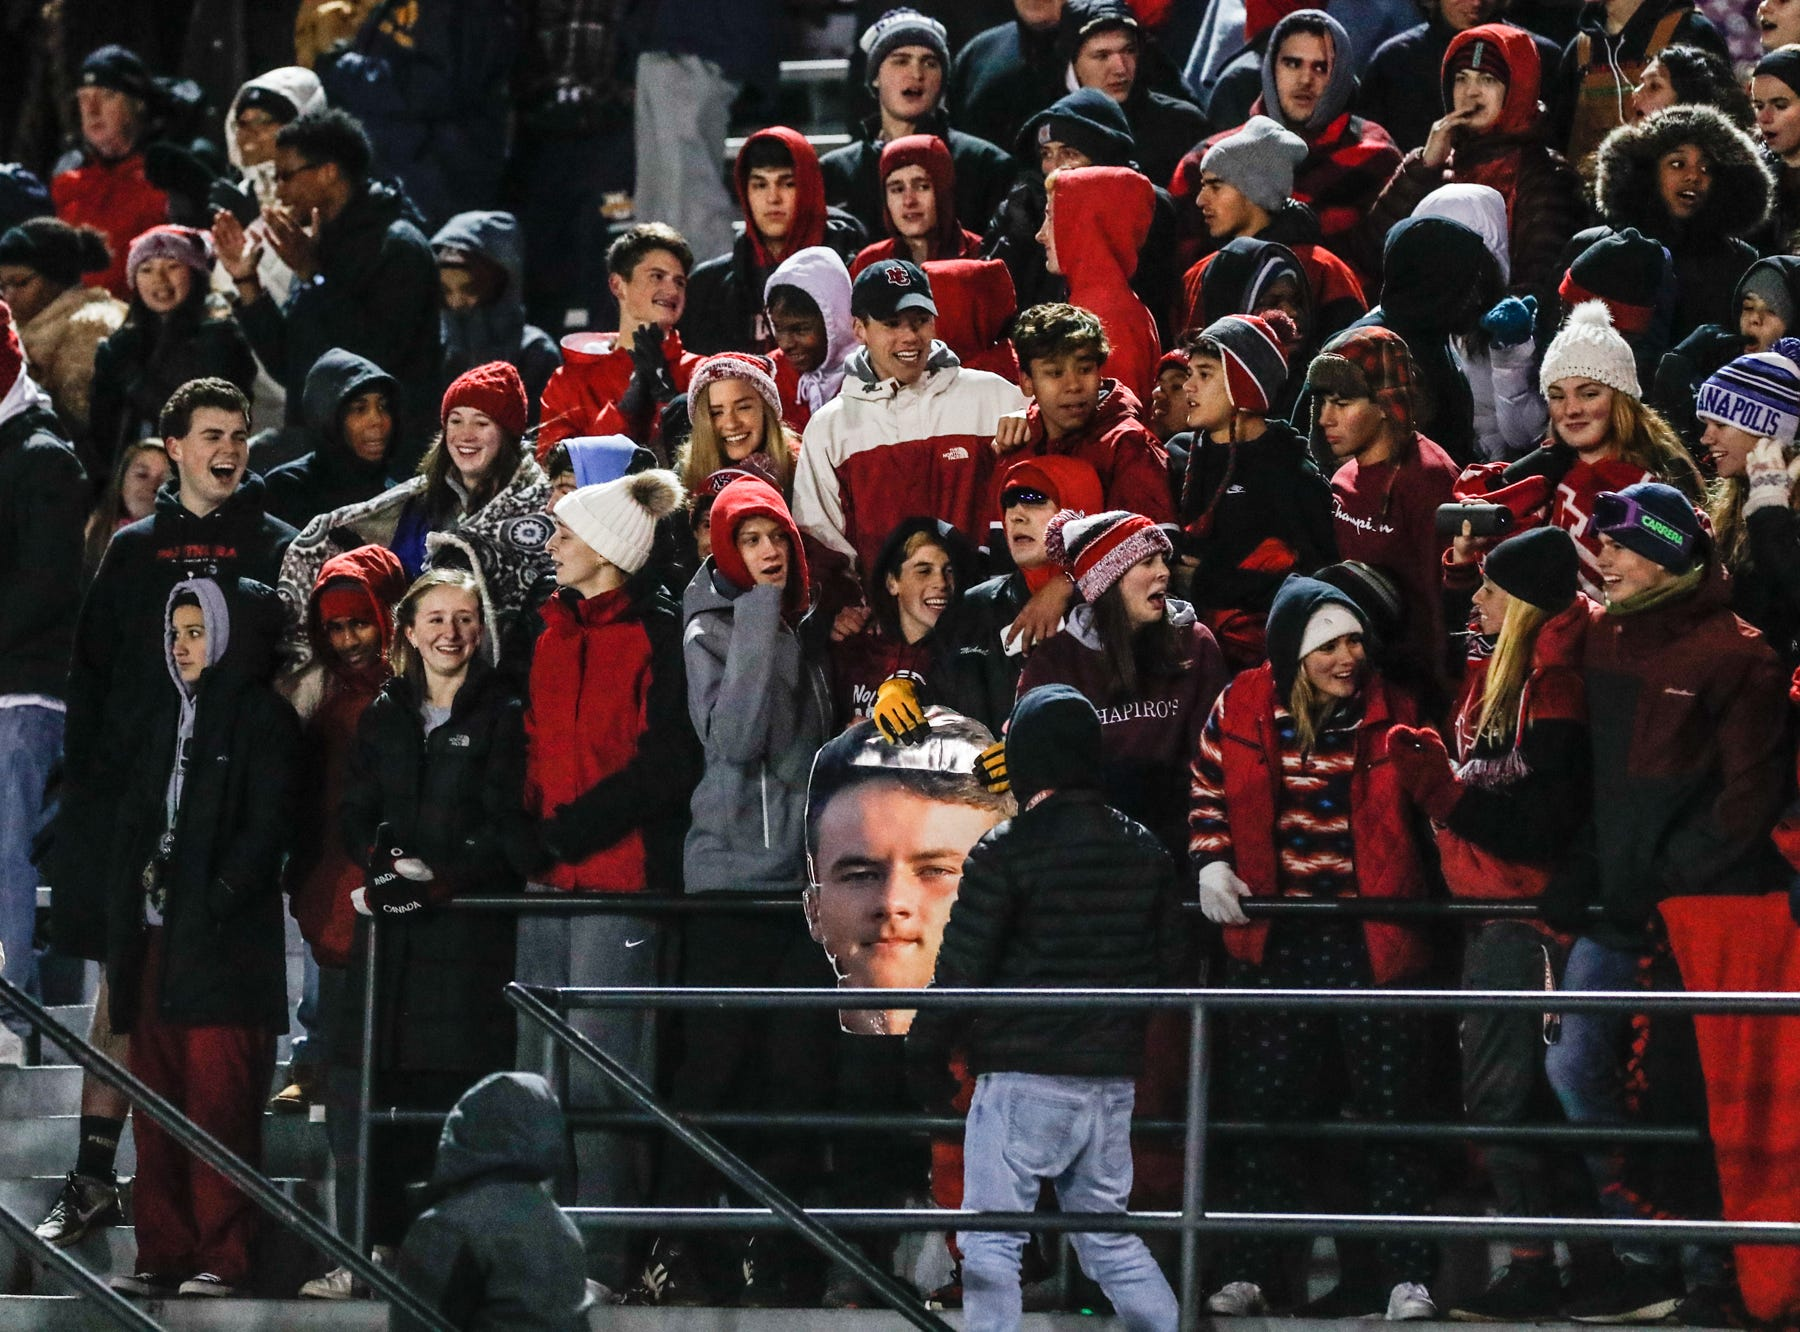 Fans go crazy during a regional finals game between the  North Central High School Panthers an the Warren Central High School Warriors at North Central High School on Friday, Nov. 9, 2018.